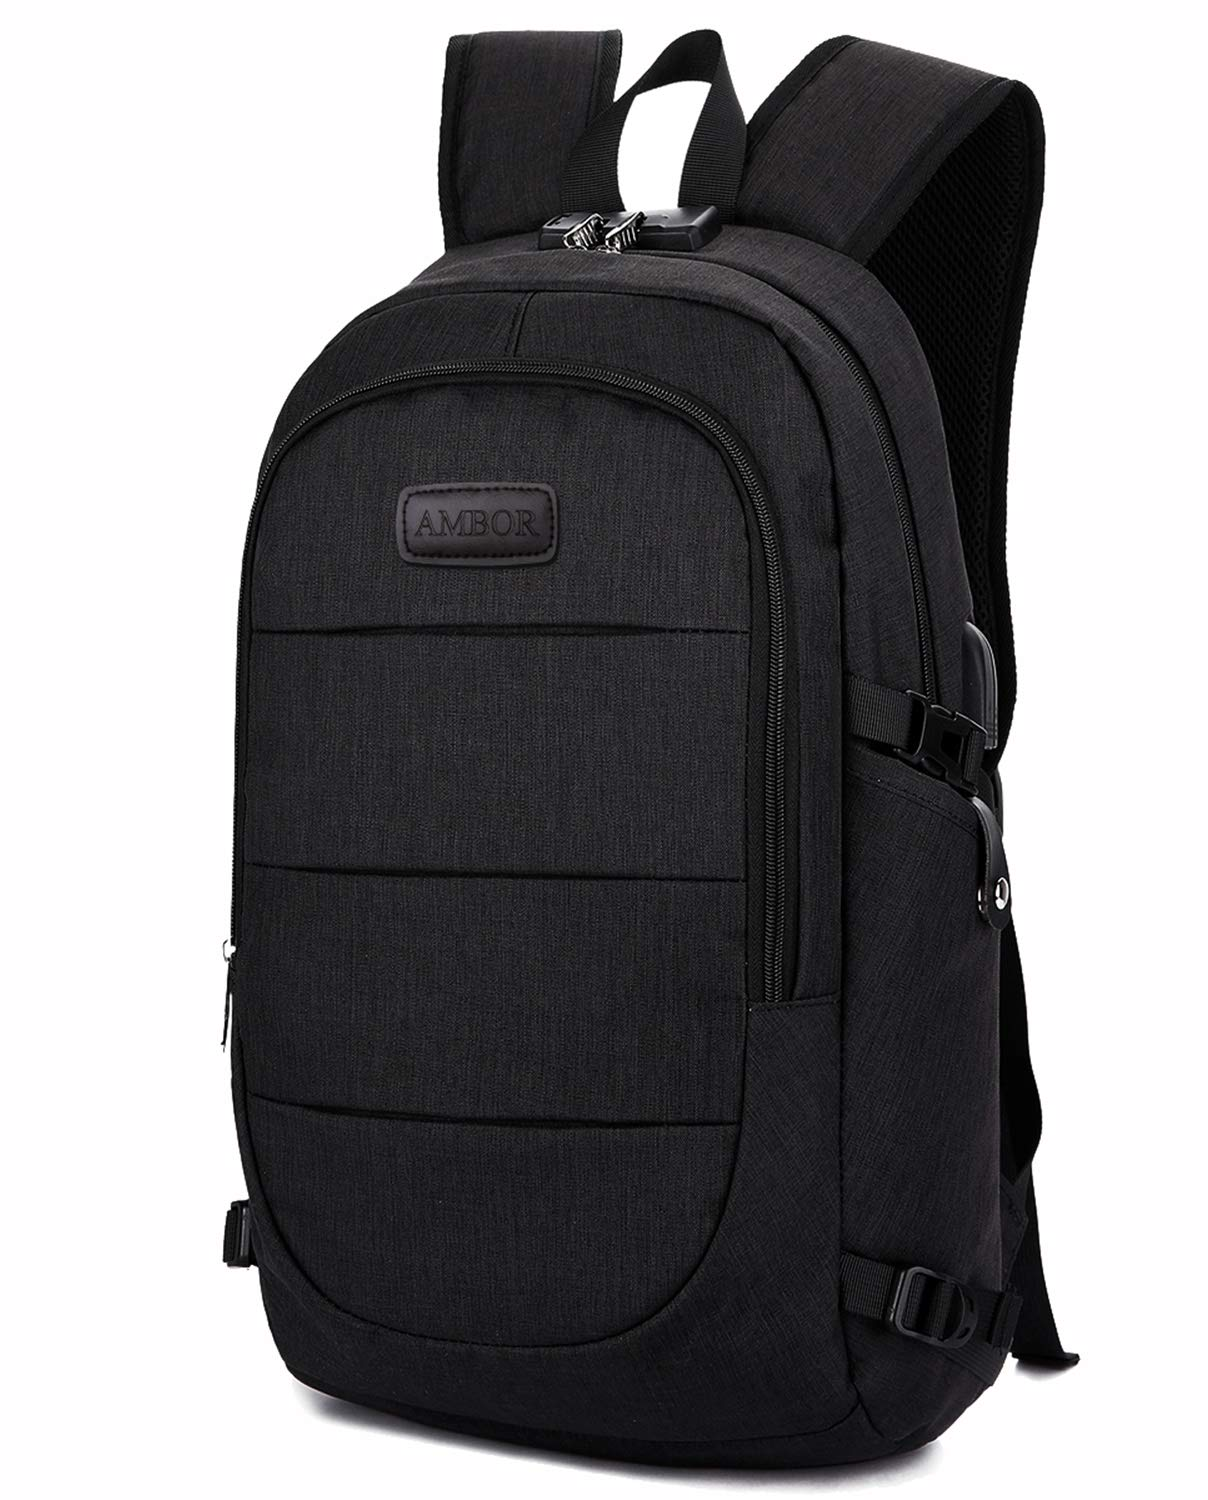 Travel Laptop Backpack, Anti Theft Business Waterproof Laptop Backpack with USB Charging Port and Headphone Interface fits Under 15.6